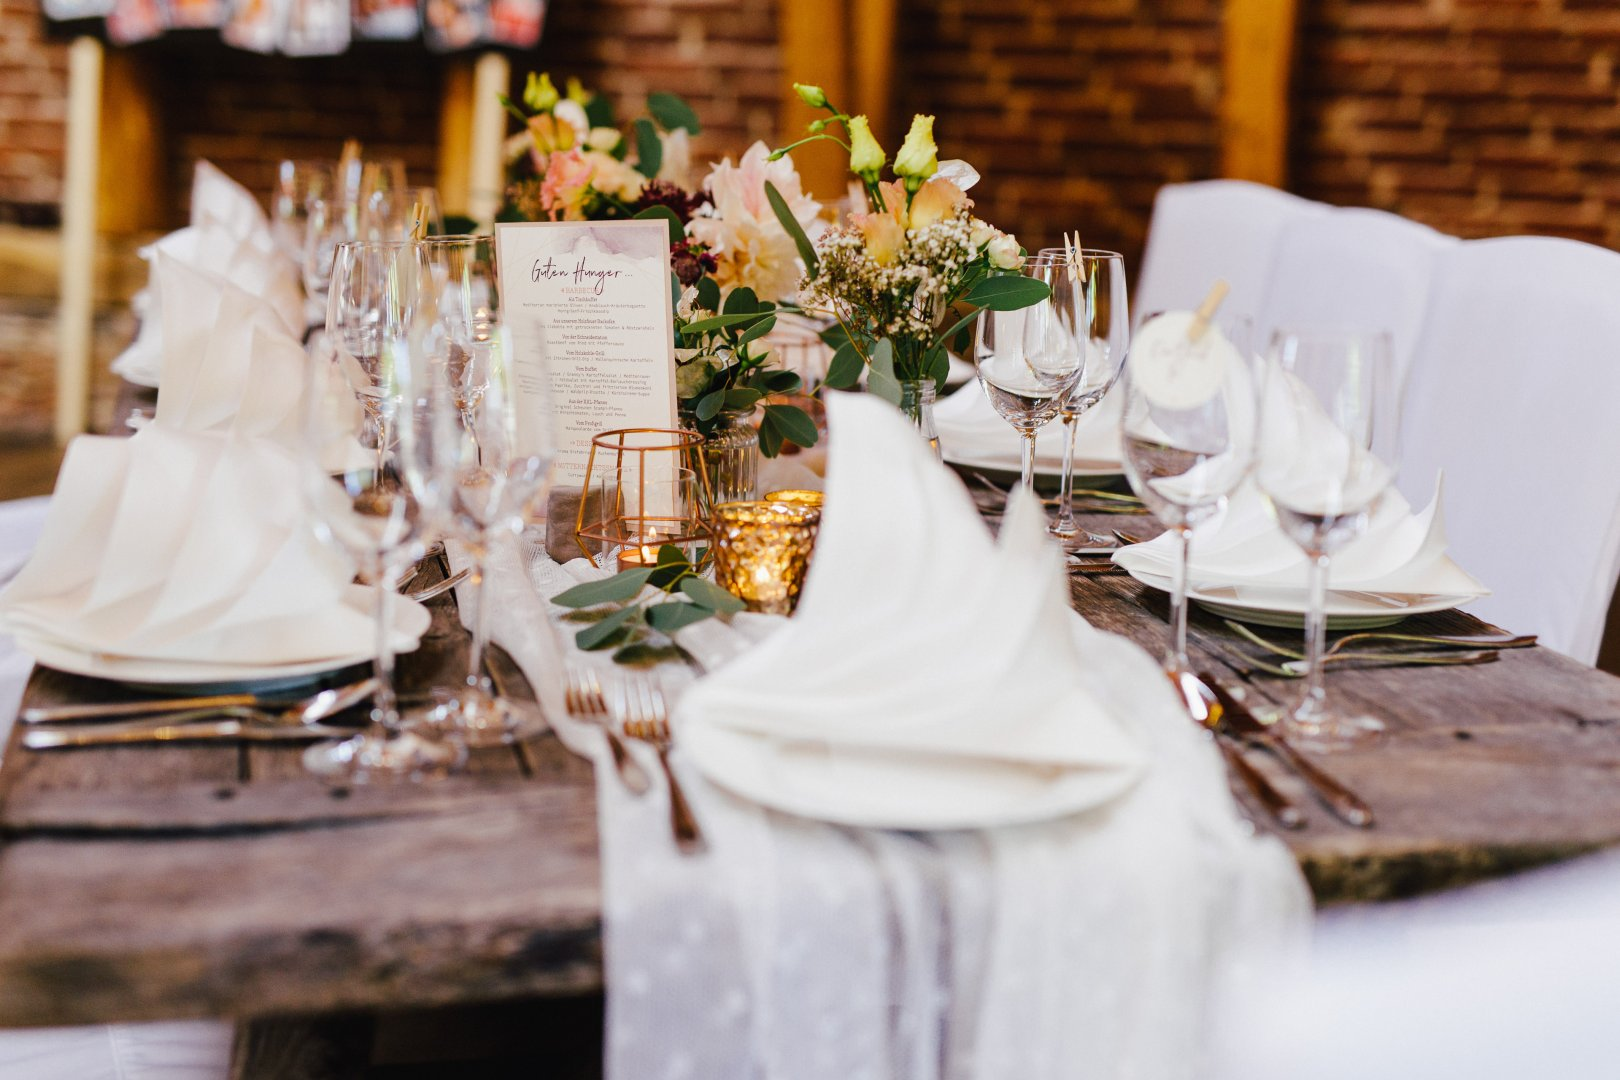 Wedding banquet Photograph Rehearsal dinner Tablecloth Restaurant Table Centrepiece Decoration Yellow Wedding reception Event Banquet Textile Chair Flower Linens Ceremony Floral design Furniture Flower Arranging Function hall Floristry Party Tableware Room Meal Plant Chiavari chair Interior design Champagne stemware